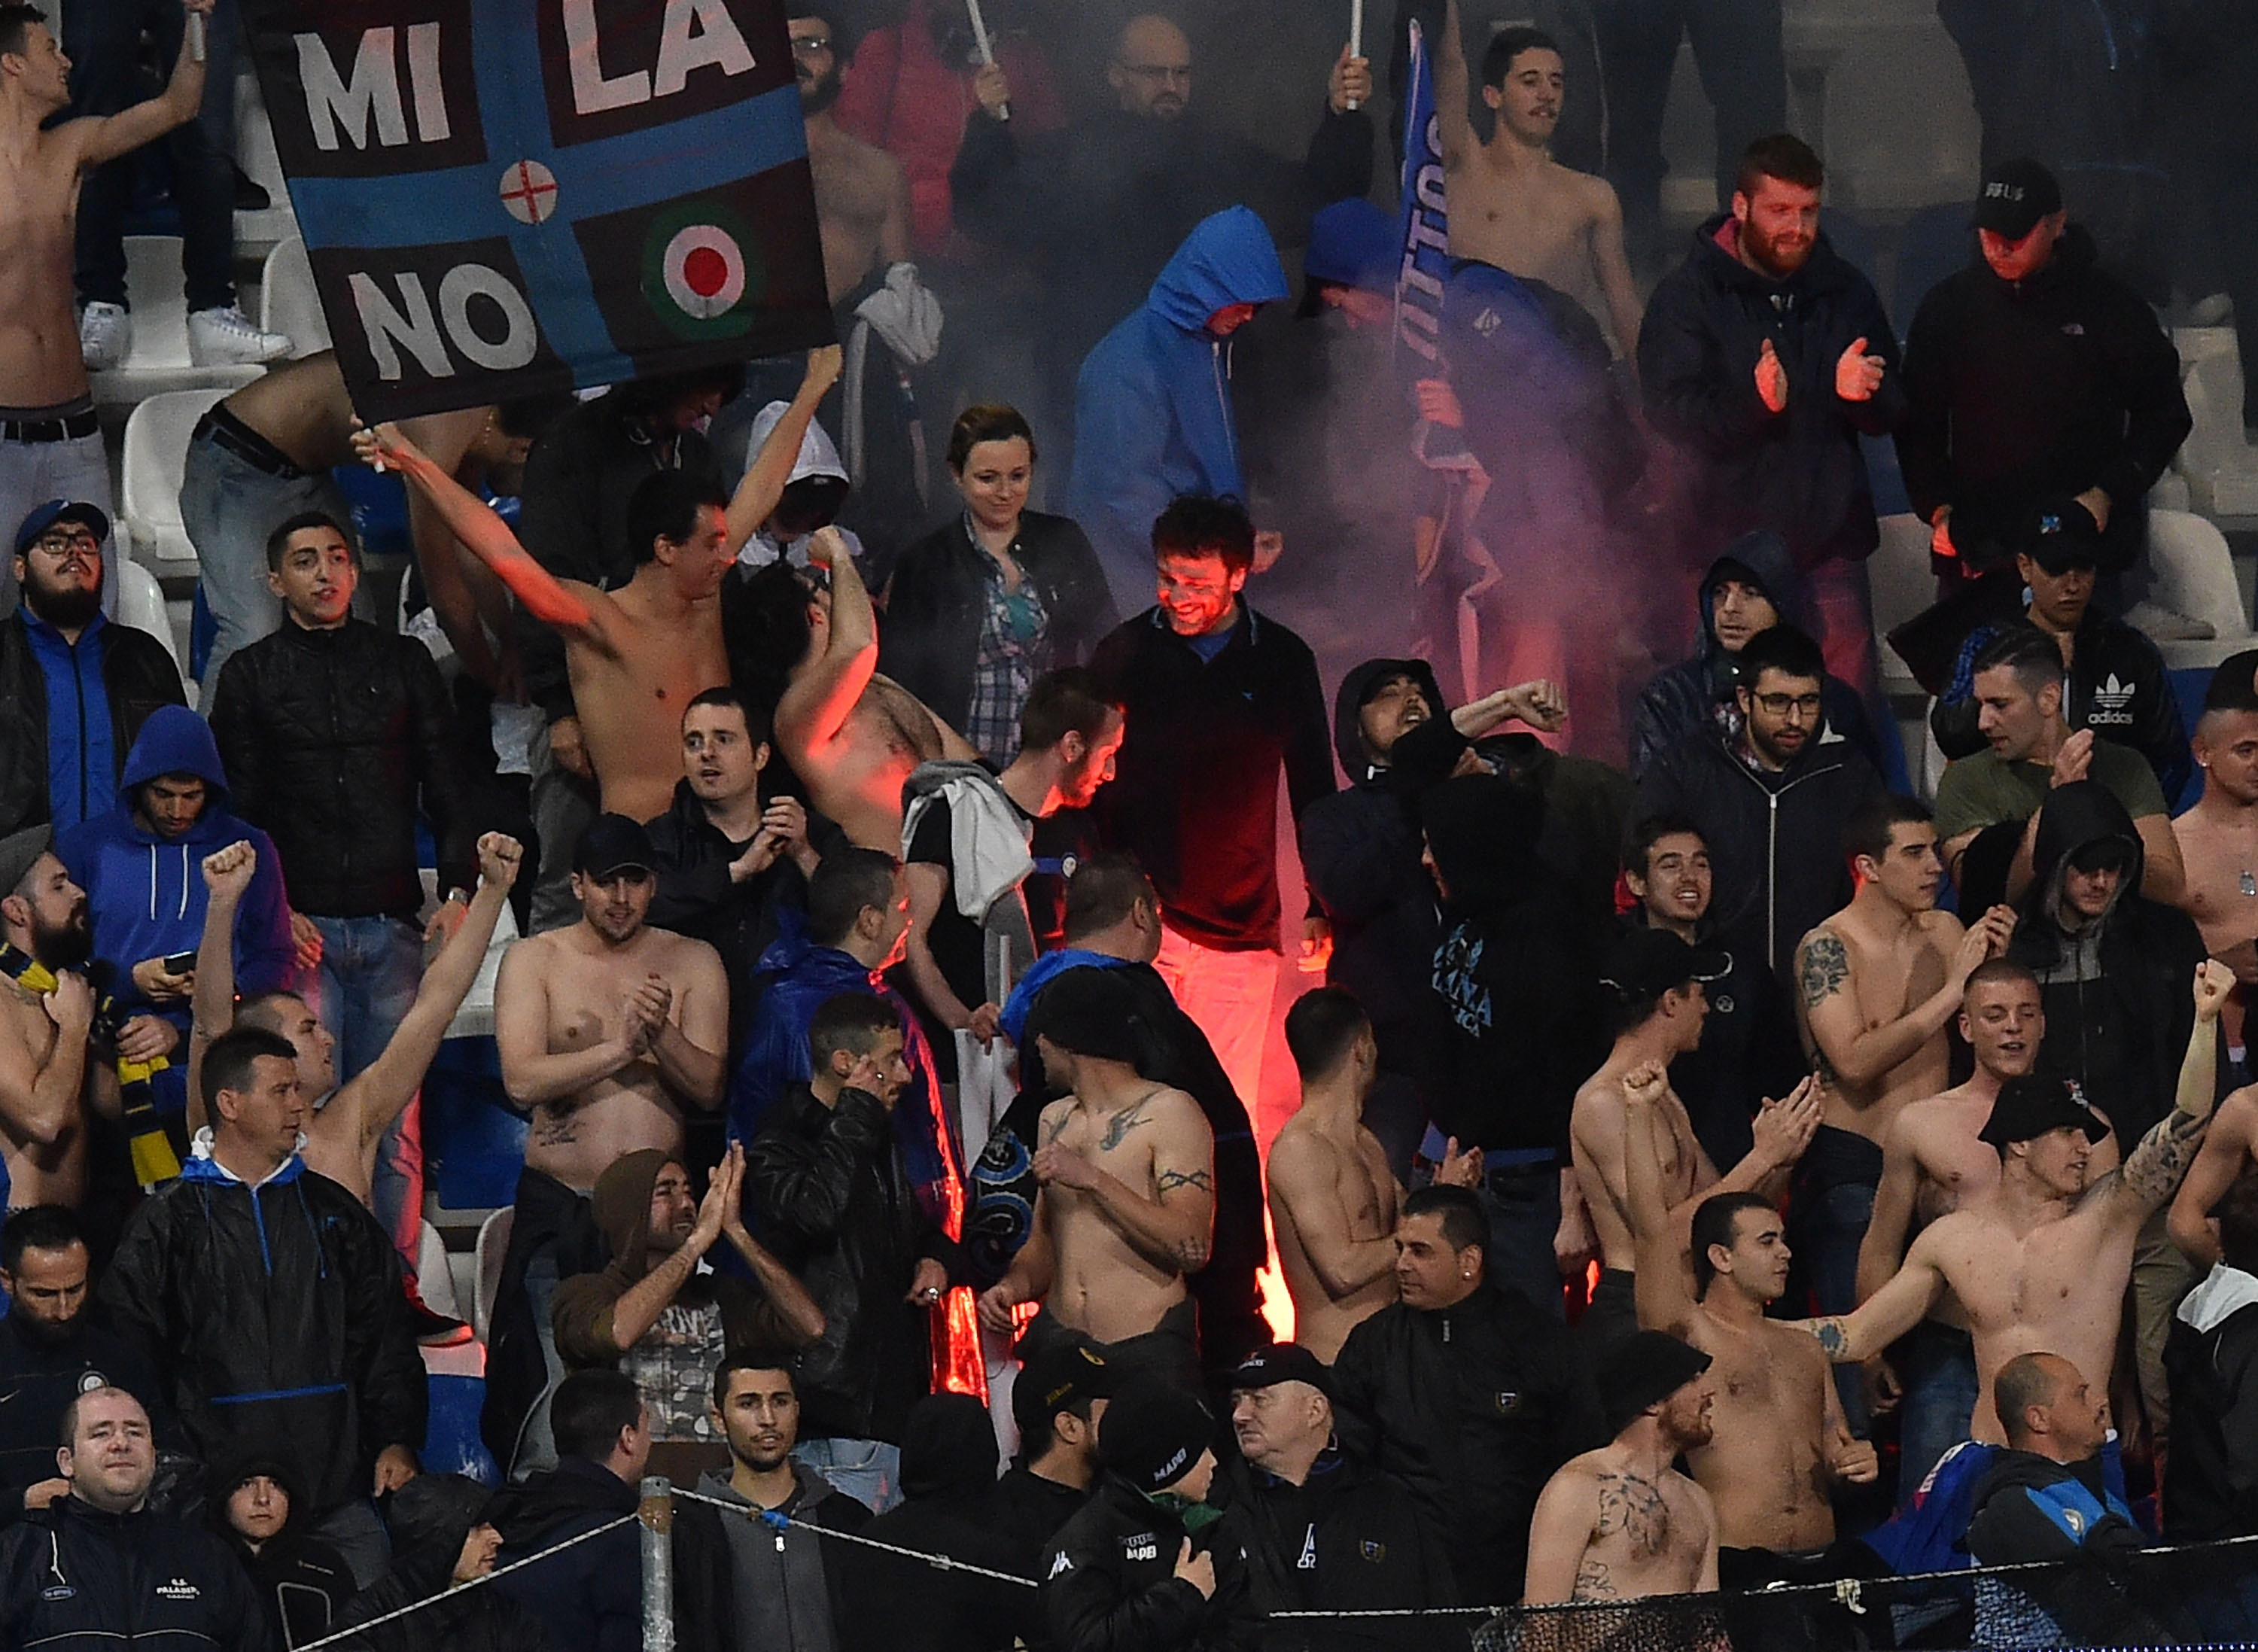 REGGIO NELL'EMILIA, ITALY - MAY 14:  Fans of FC Internazionale Milano during the Serie A match between US Sassuolo Calcio and FC Internazionale Milano at Mapei Stadium - Città del Tricolore on May 14, 2016 in Reggio nell'Emilia, Italy  (Photo by Giuseppe Bellini/Getty Images)